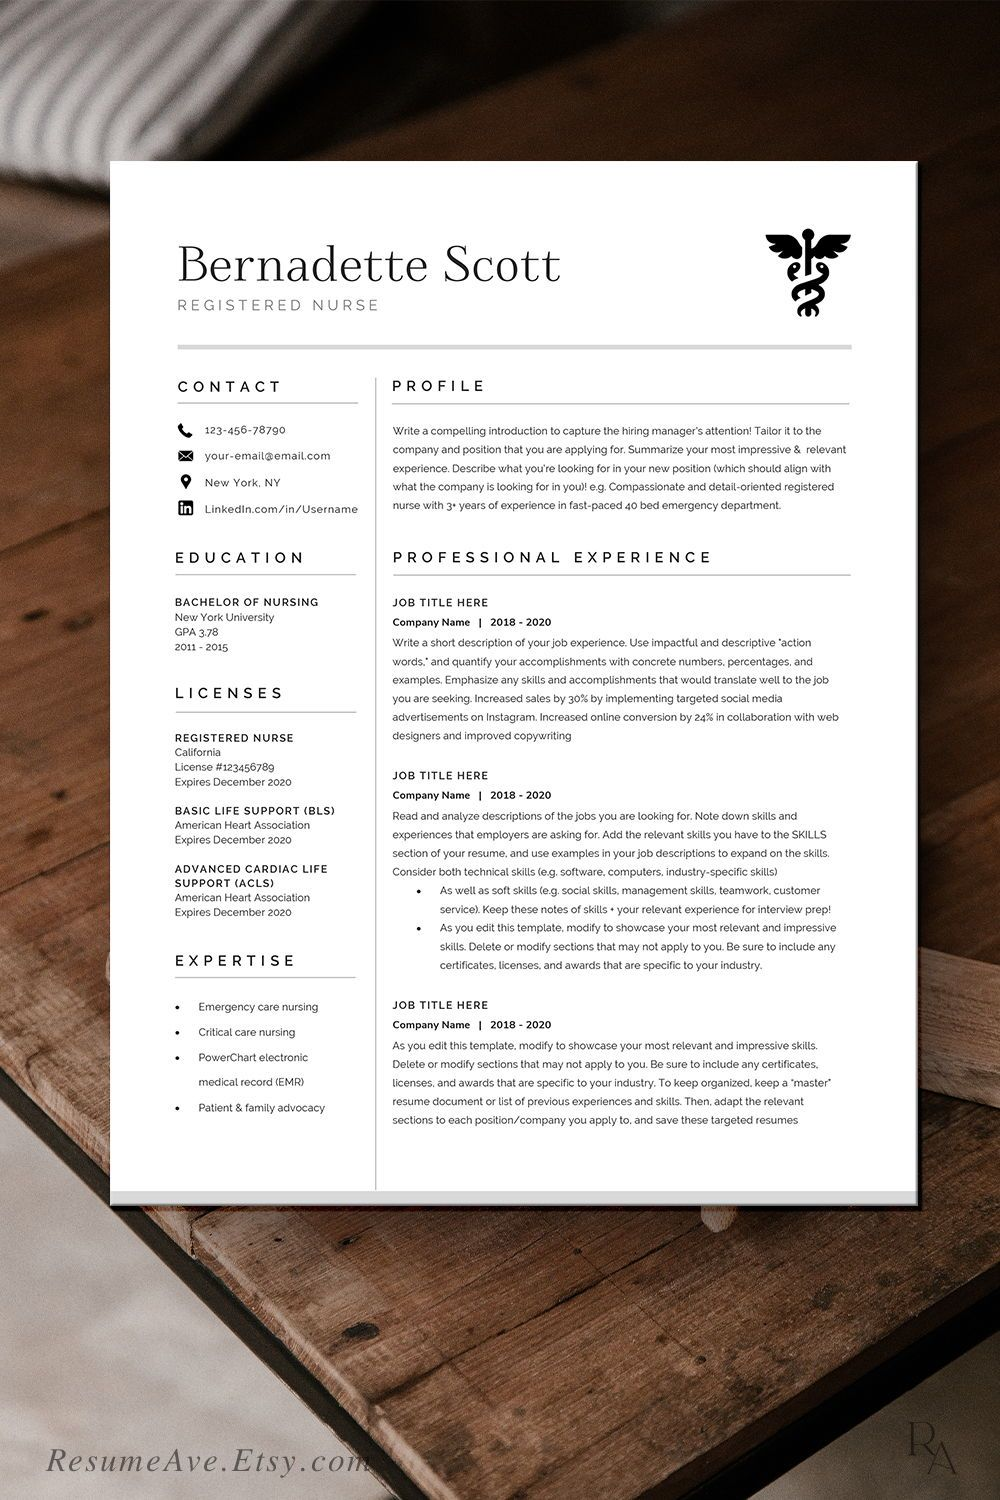 Modern nurse resume template / cv template for digital